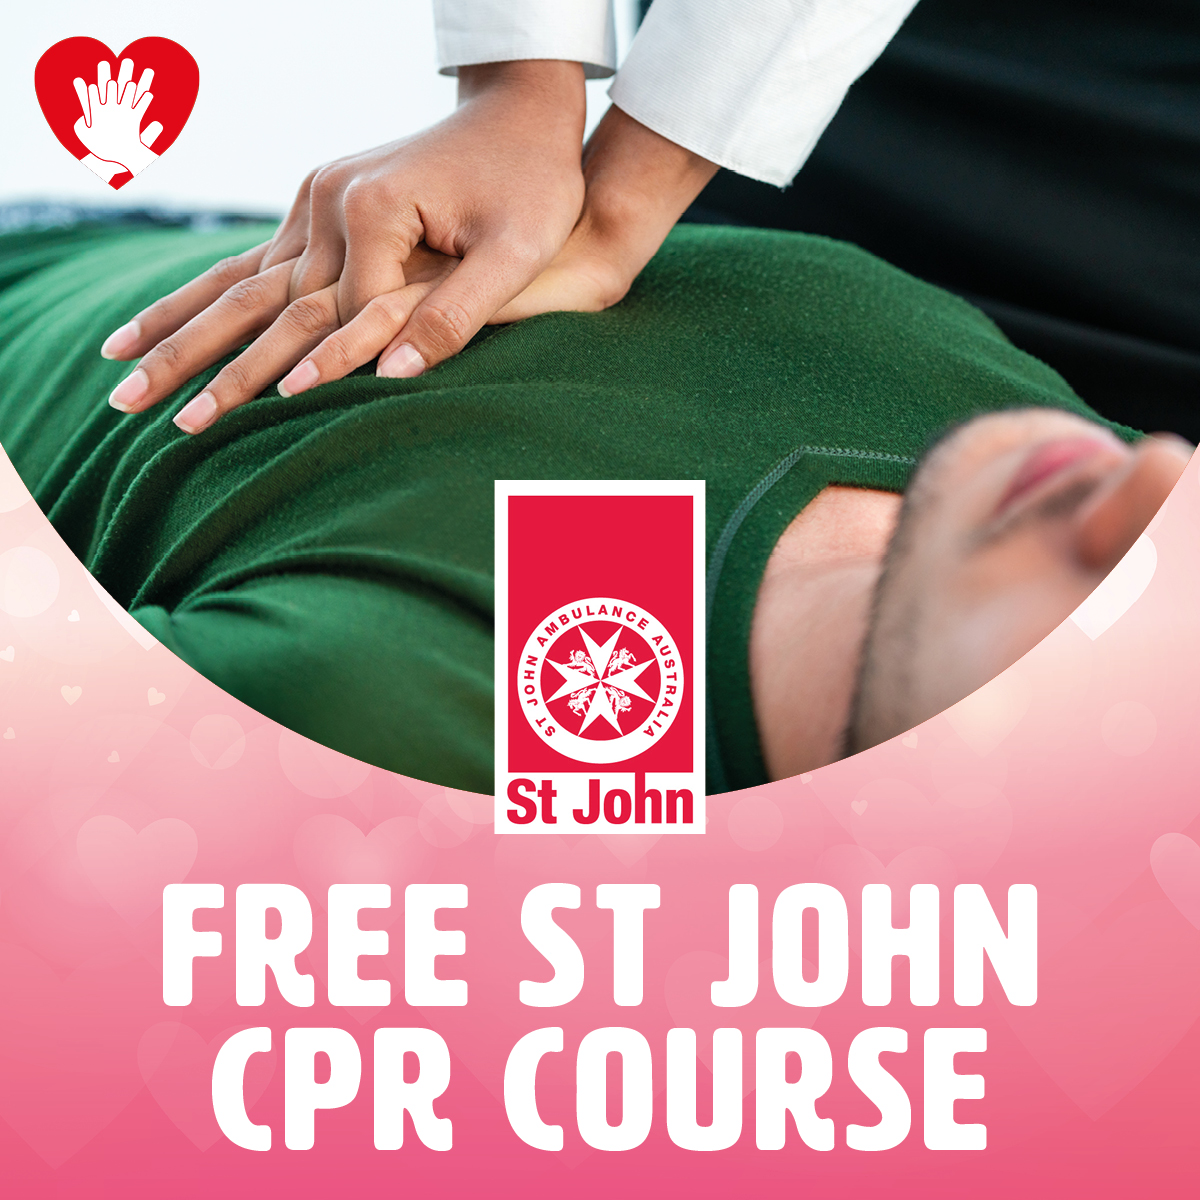 FREE St John CPR Course at Gateway